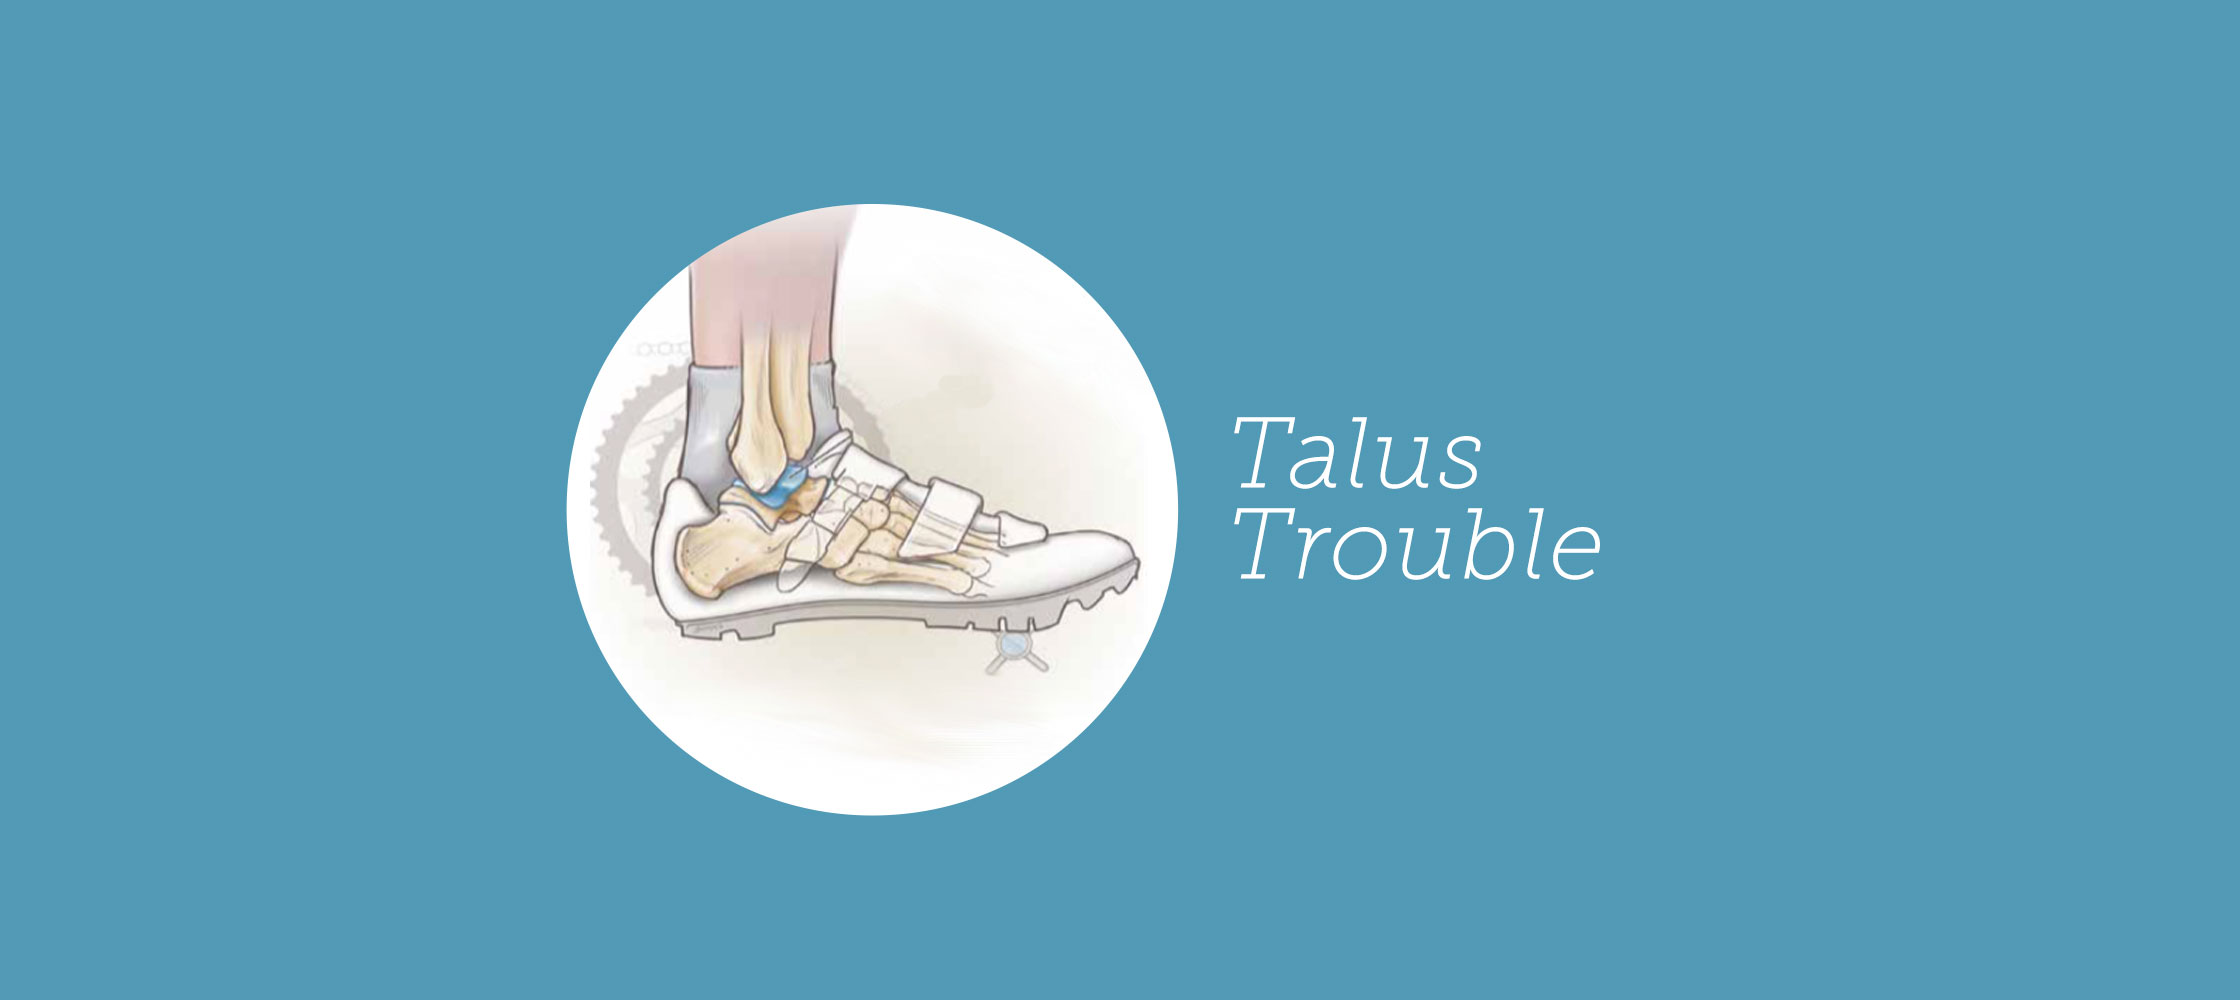 204-talus-trouble